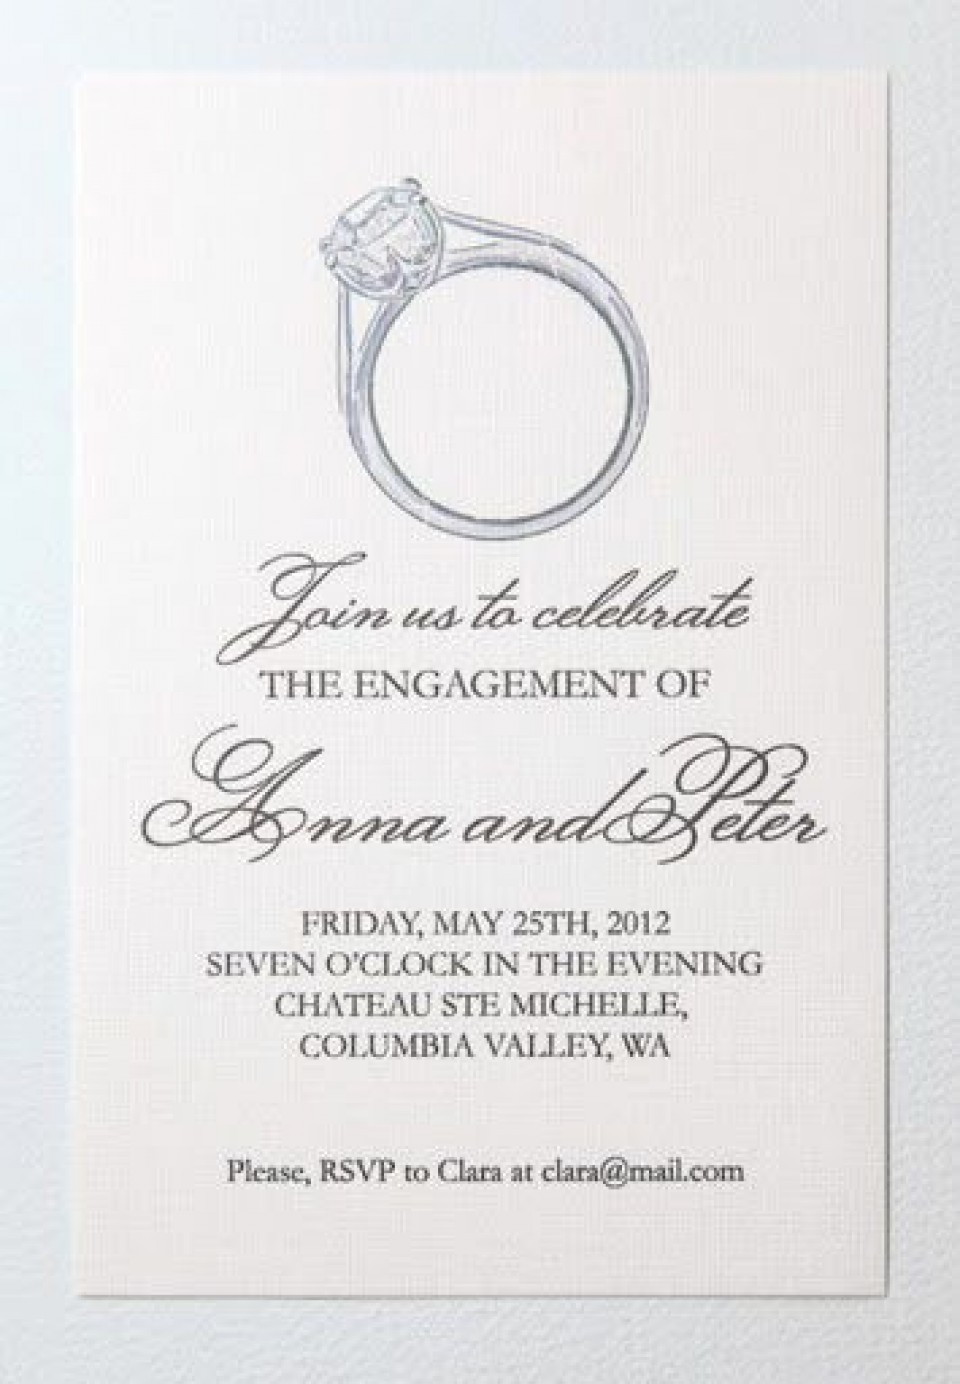 008 Unforgettable Free Engagement Invitation Template Online With Photo Highest Clarity 960